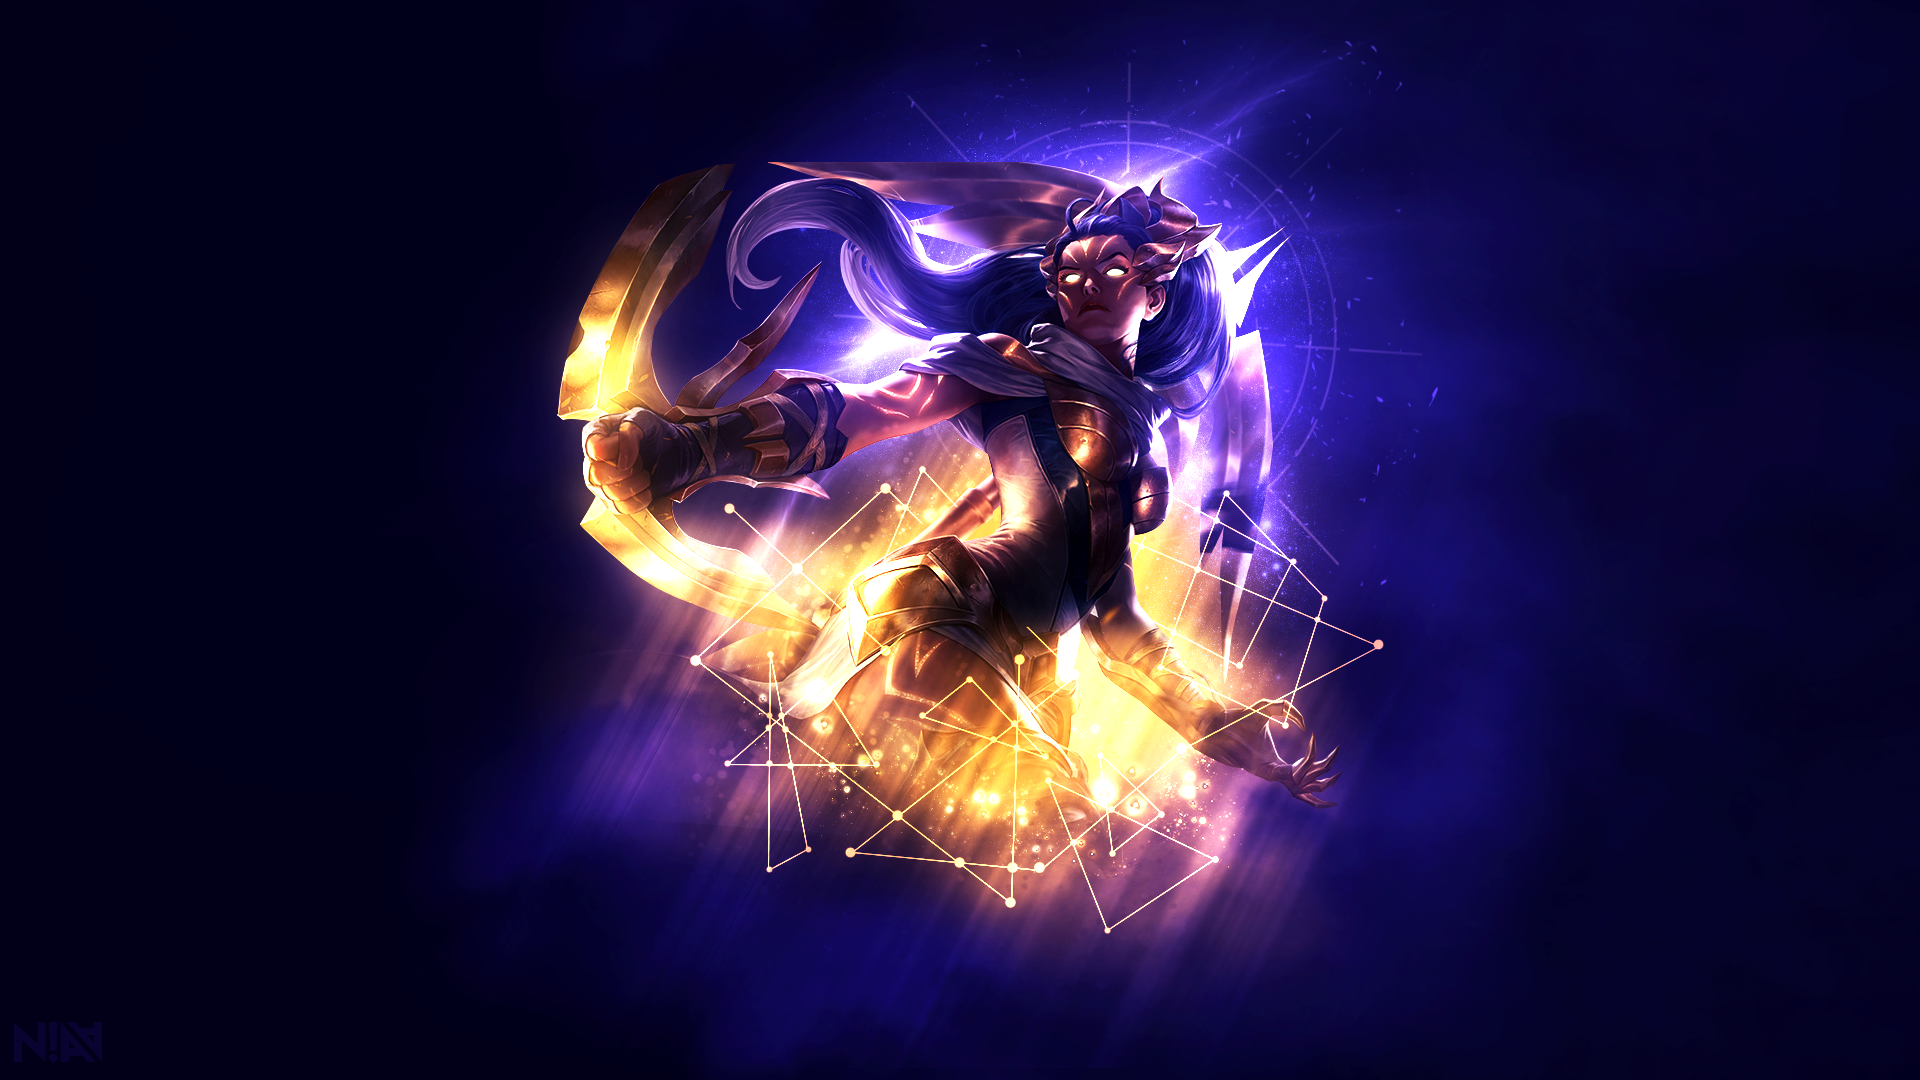 Arclight Vayne Wallpaper by AliceeMad on DeviantArt